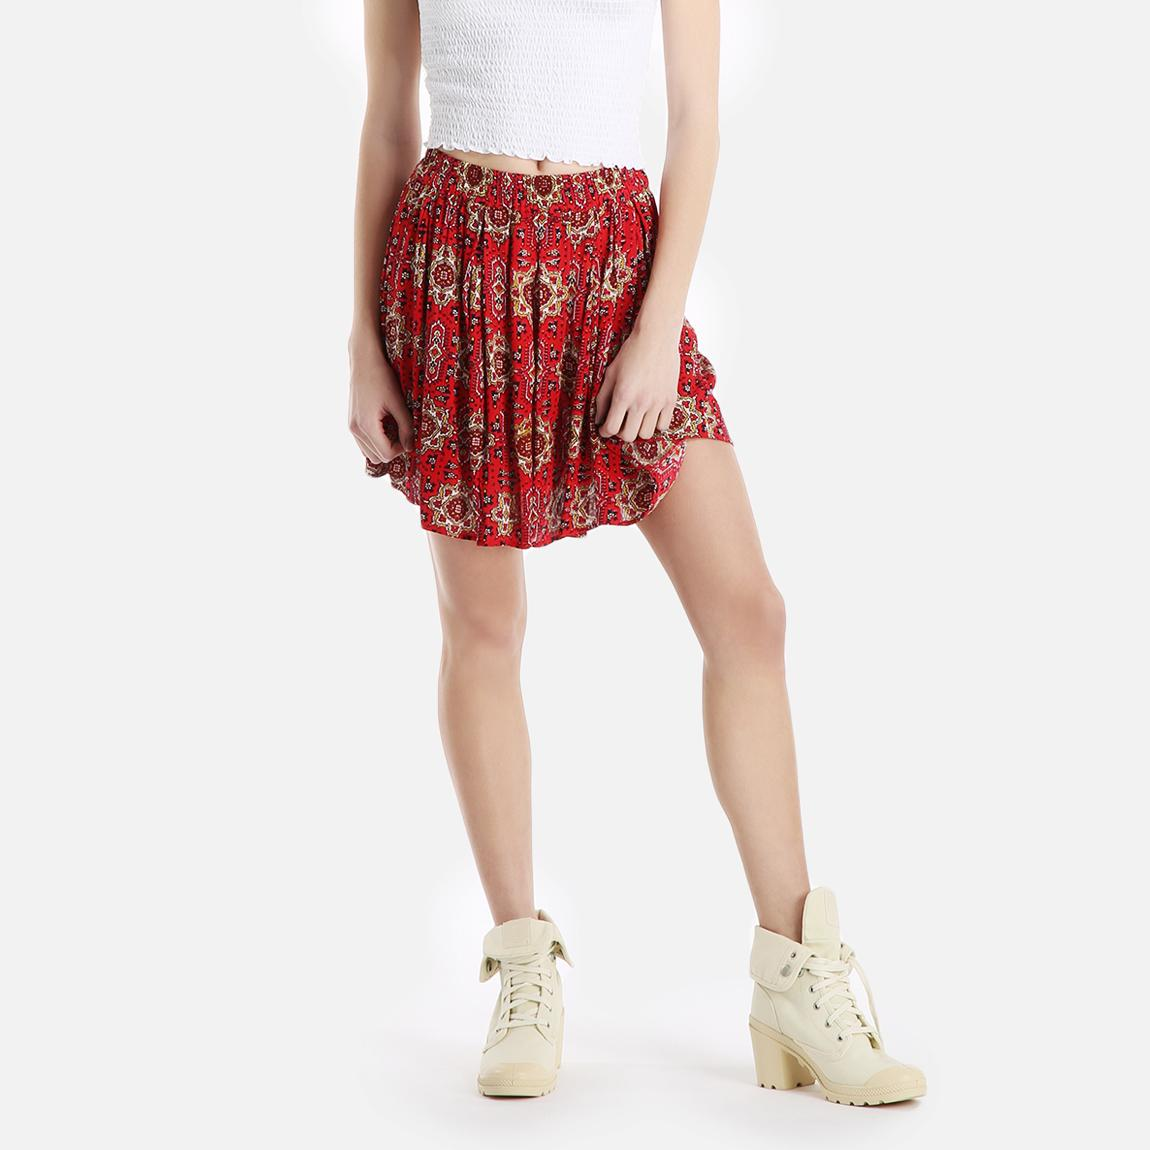 1, results for new look skater skirt Save new look skater skirt to get e-mail alerts and updates on your eBay Feed. Unfollow new look skater skirt to stop getting updates on your eBay feed.